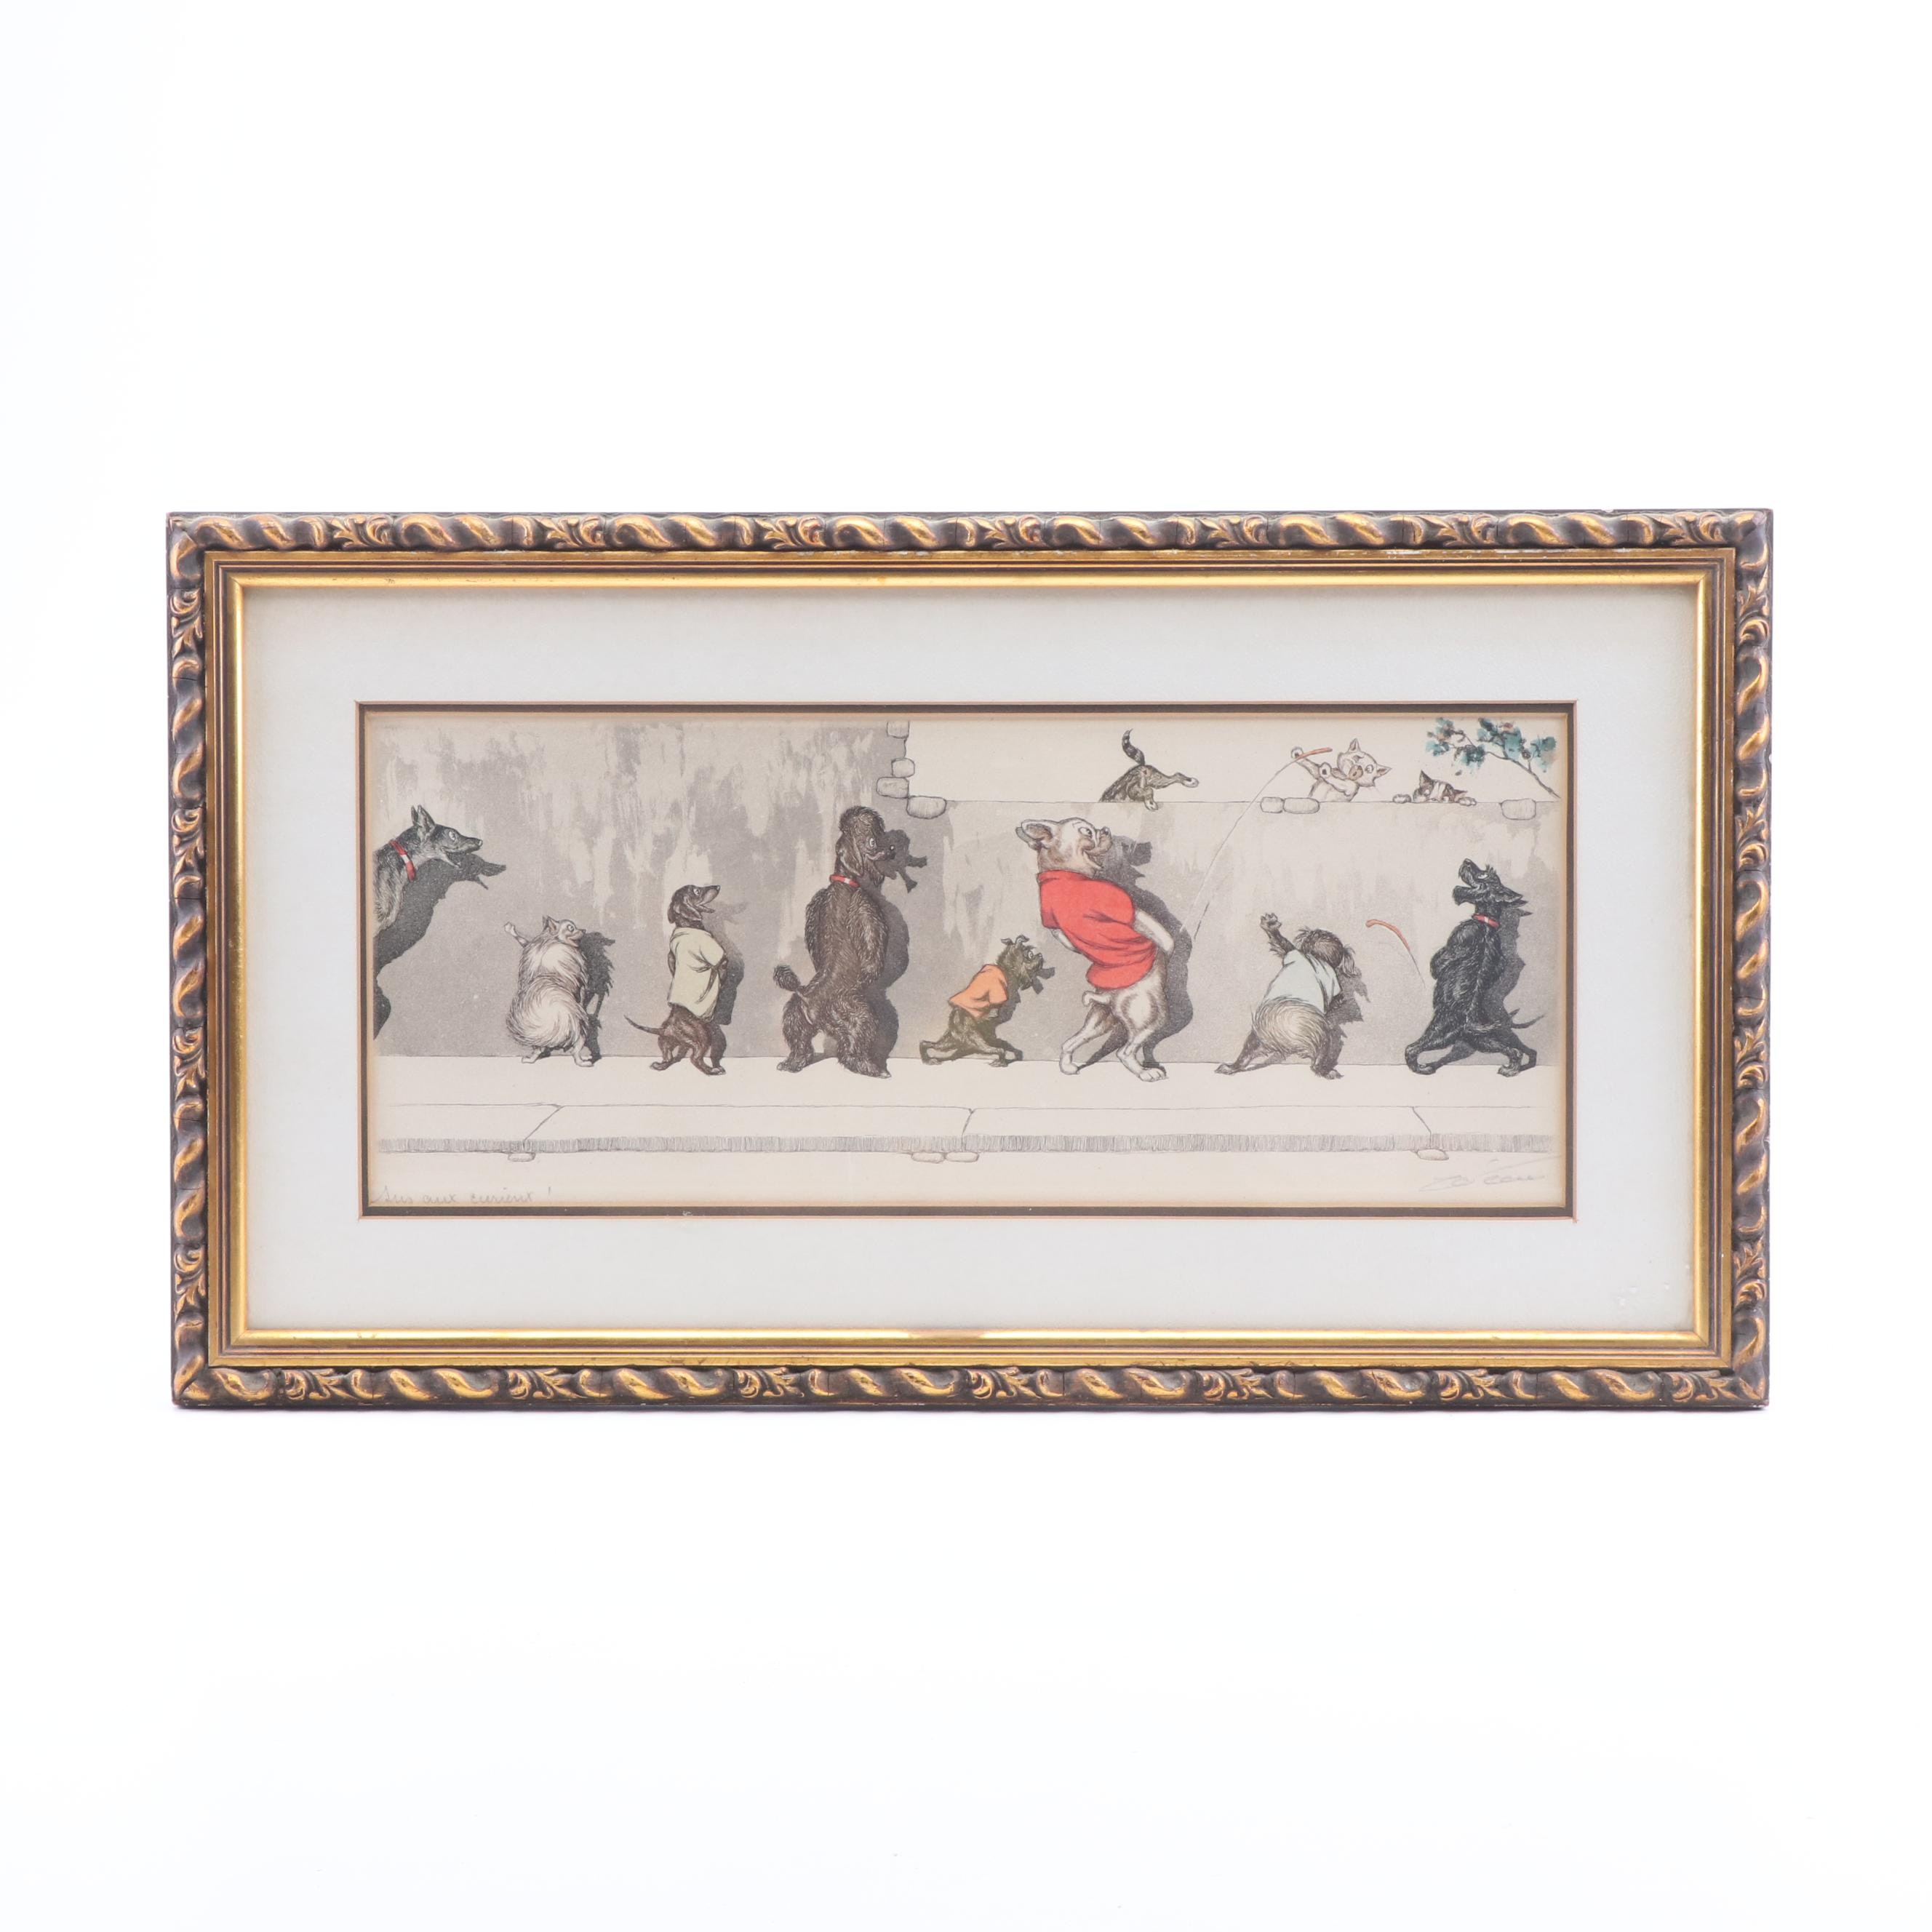 "Boris O'Klein Hand-Colored Etching ""Susaux Curieux!"""